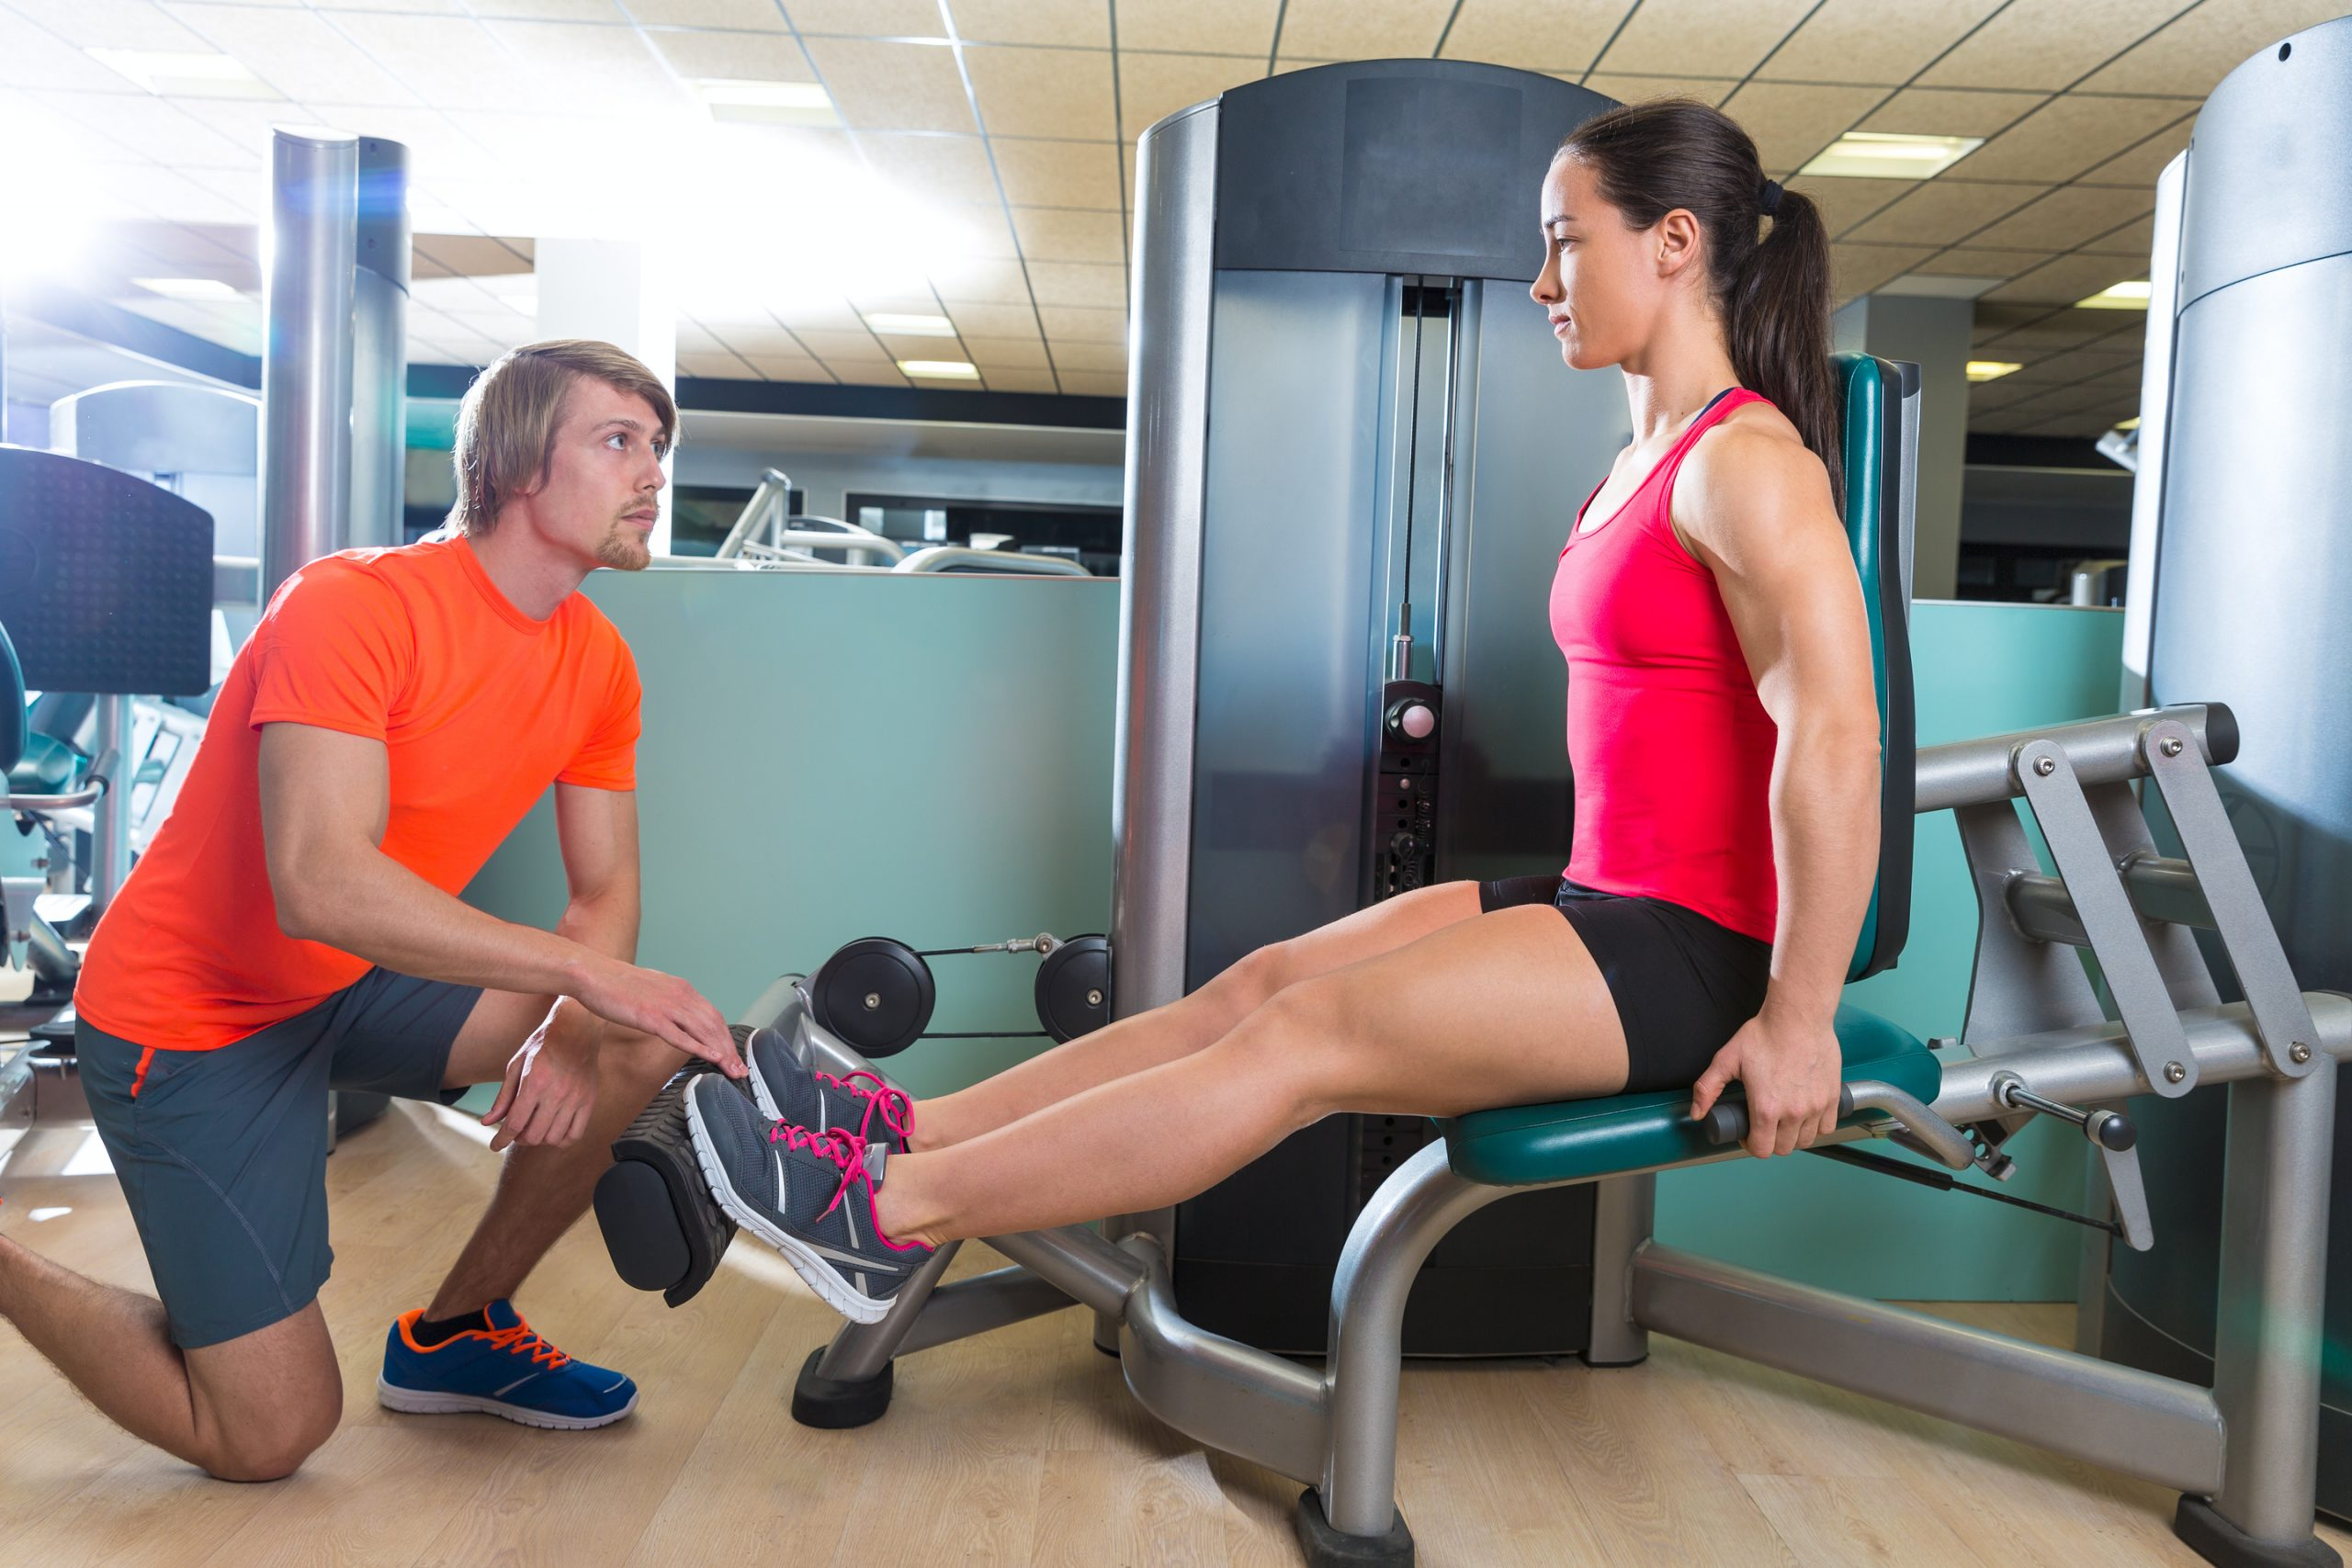 specialstrong-trainer and his client